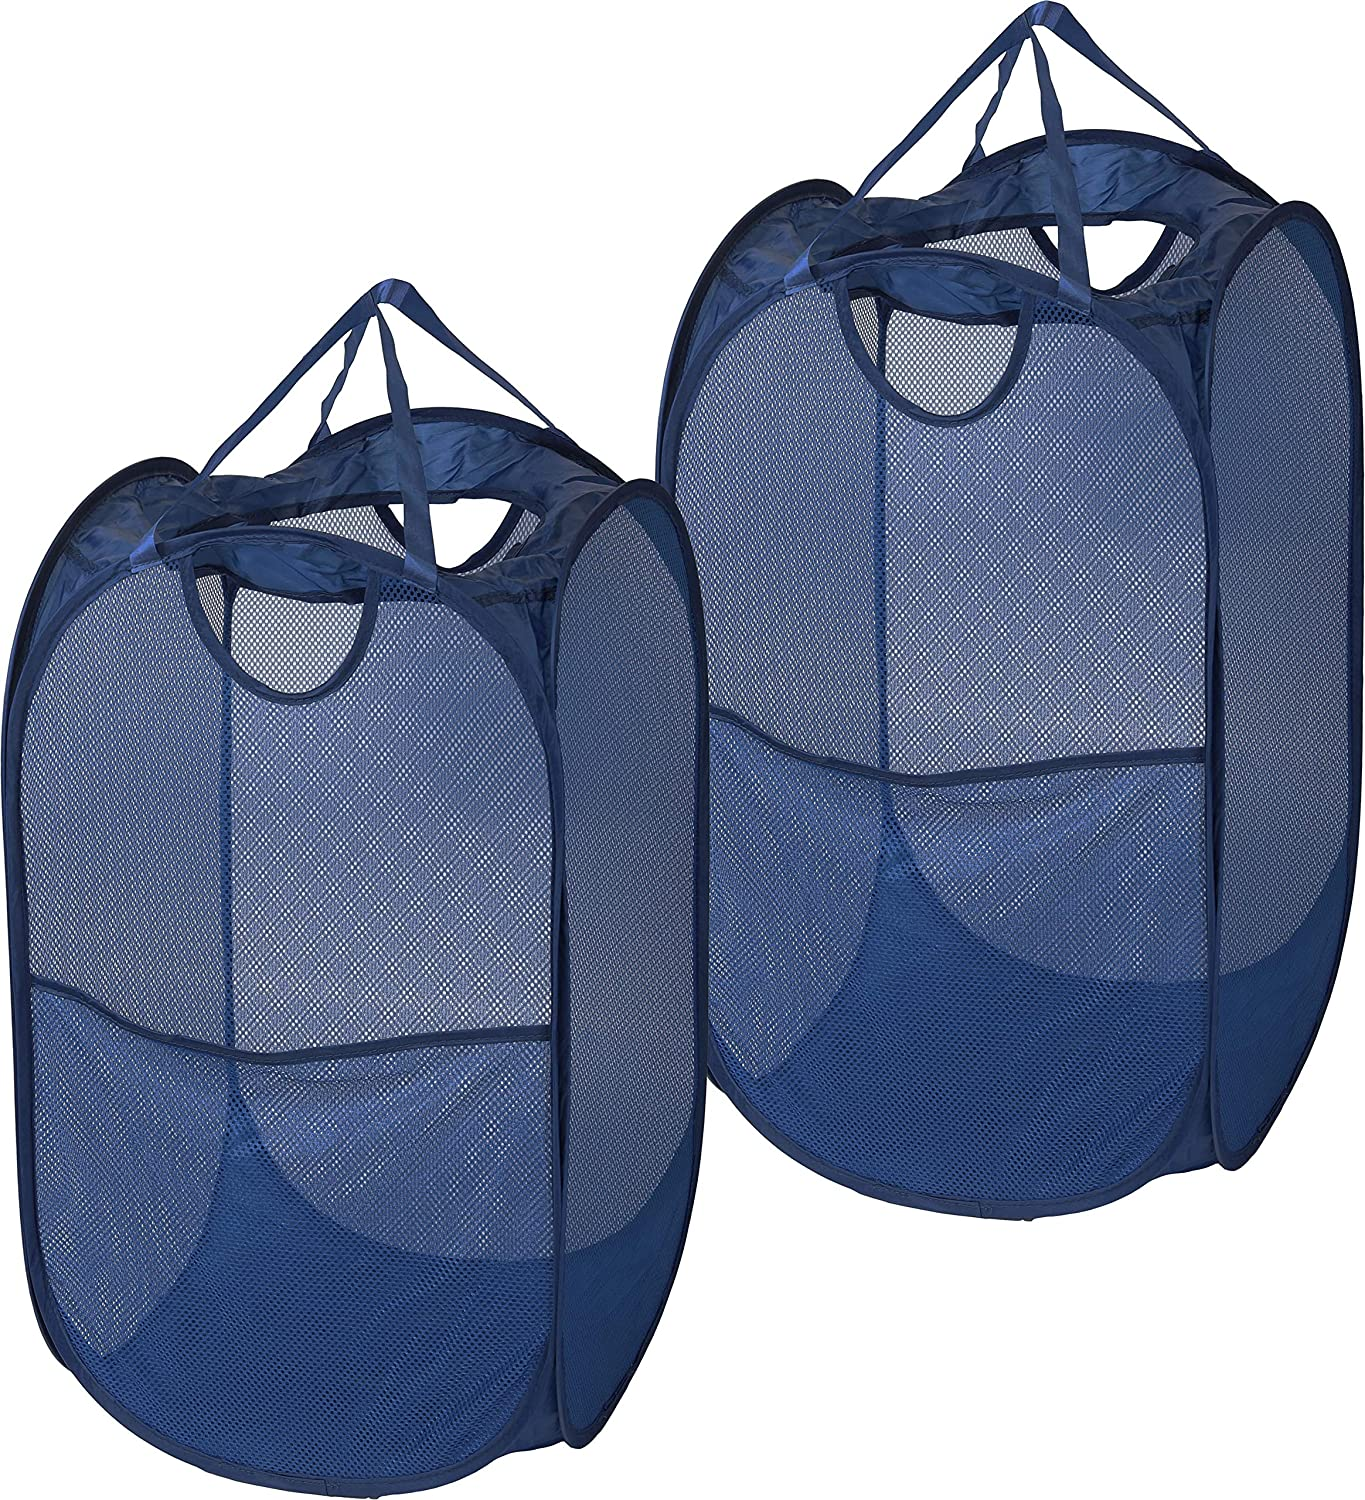 2 Pack - SimpleHouseware Mesh Pop-Up Laundry Hamper Basket with Side Pocket, Dark Blue